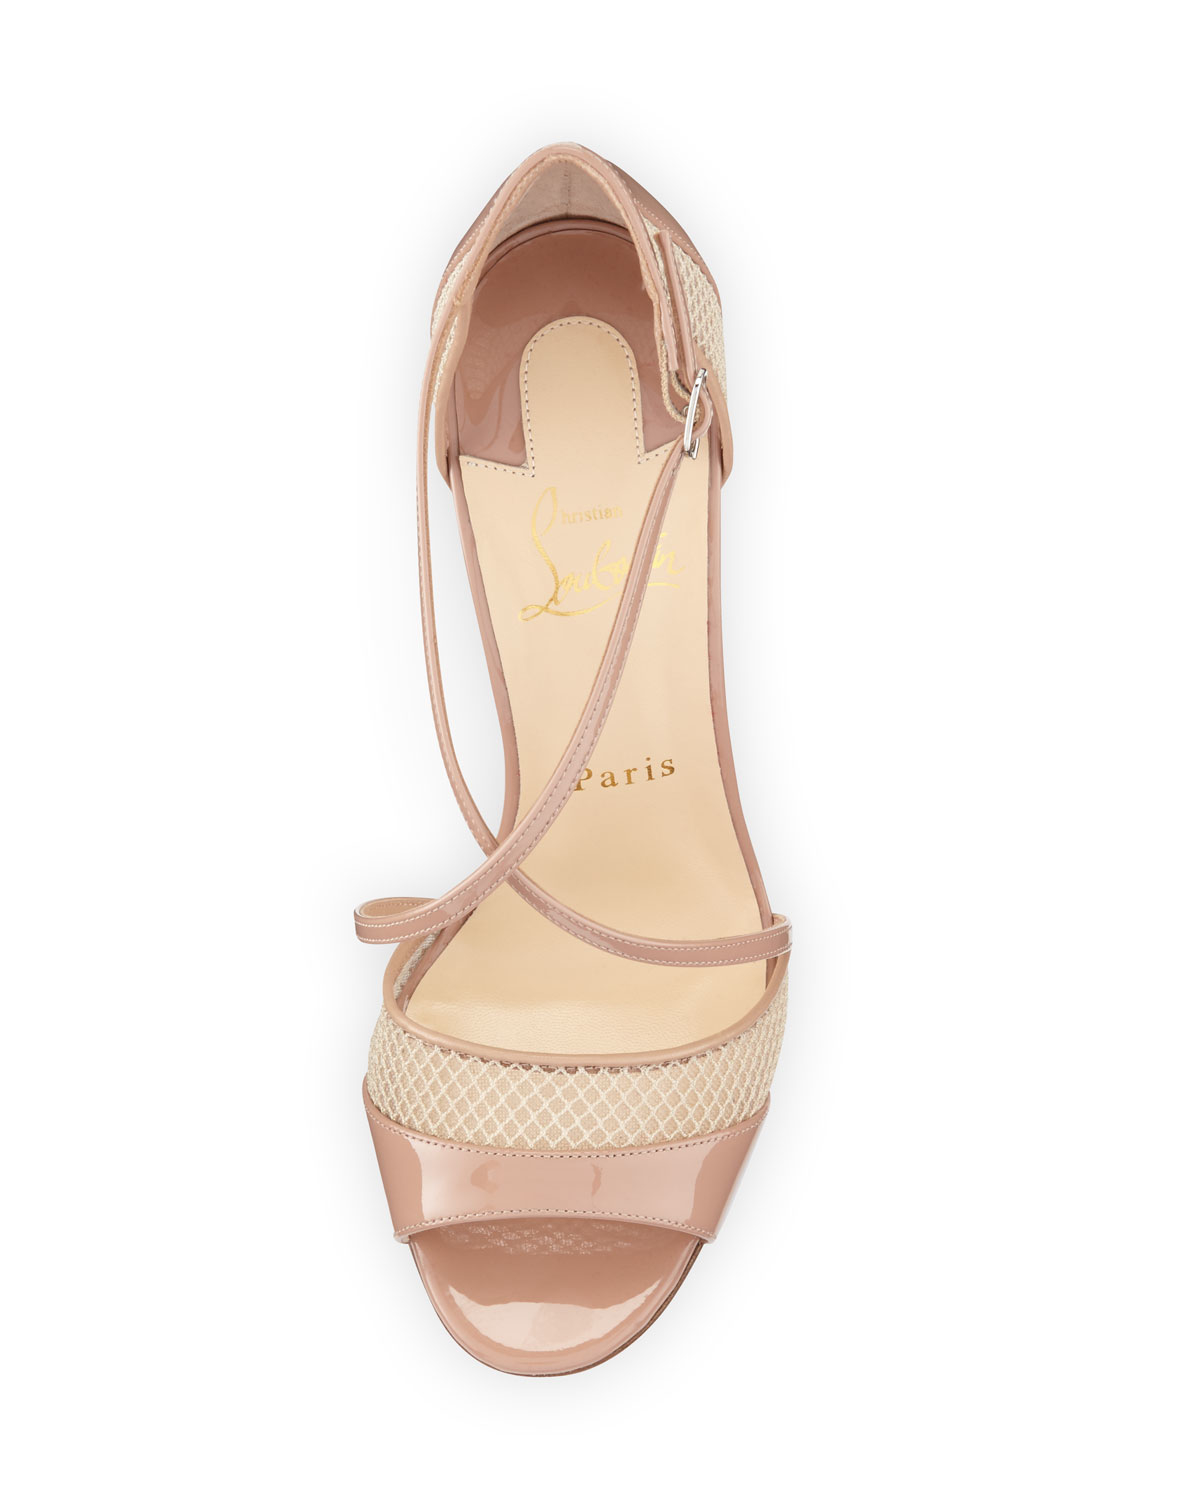 christian louboutin mens sneakers sale - Christian louboutin Slikova Patent and Mesh Sandals in Beige (NUDE ...